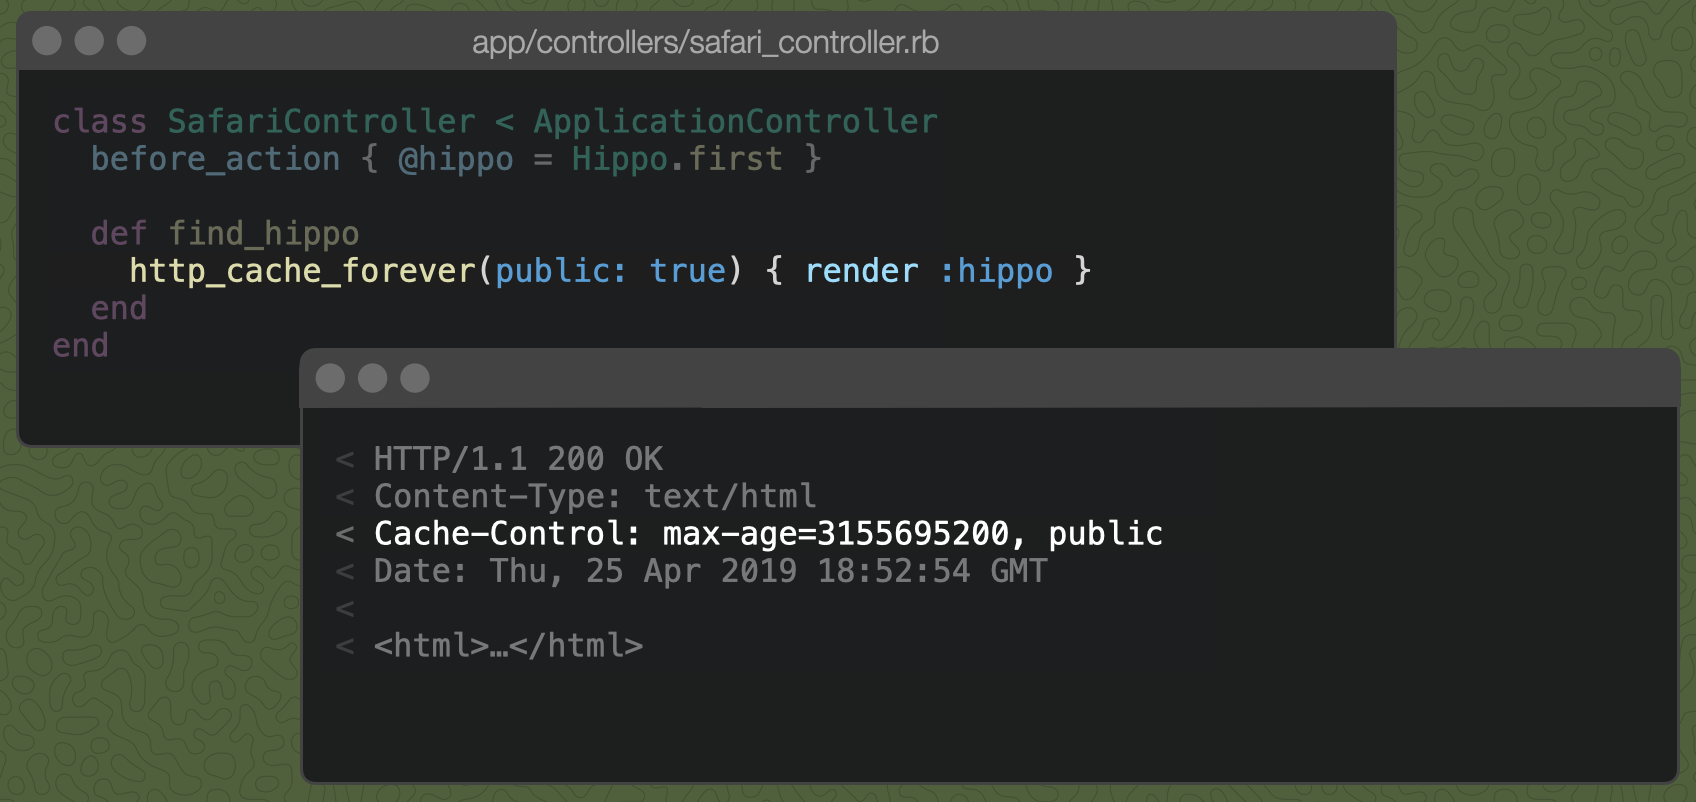 A Rails controller action with http_cache_forever(public: true) { render :hippo } and the resulting Cache-Control header, marked public.